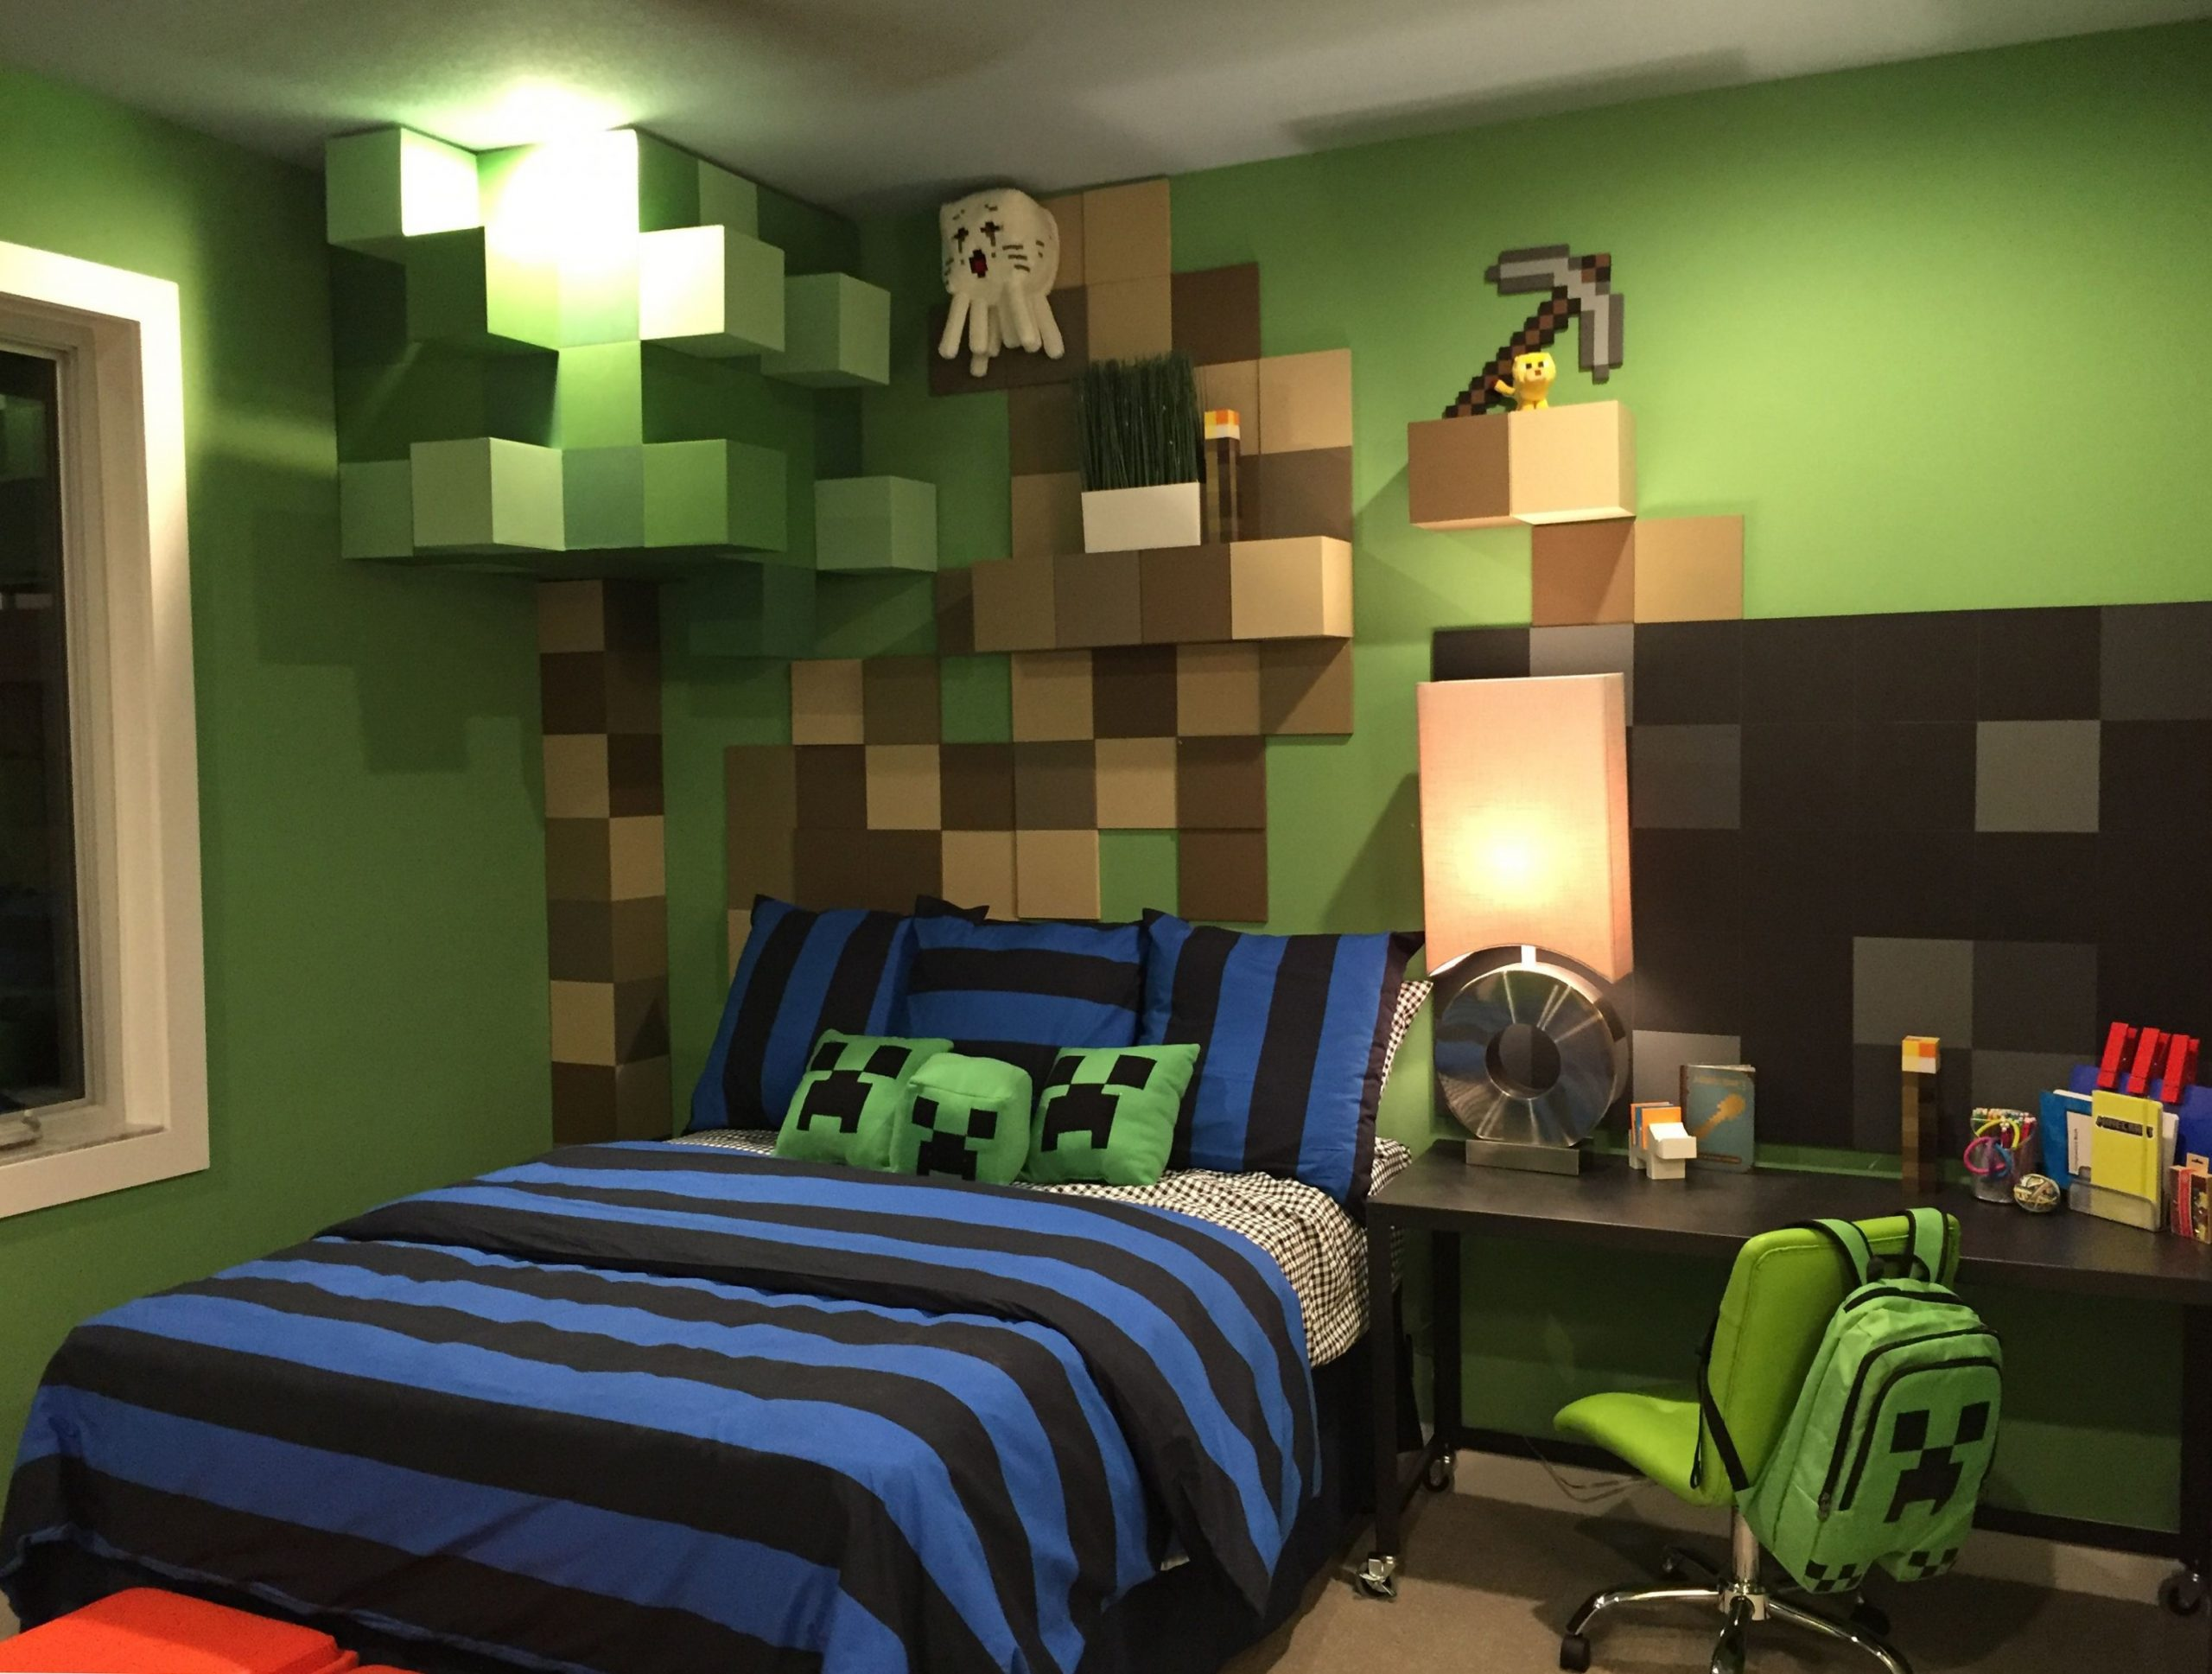 Pin on Just for Kids! - Bedroom Ideas In Minecraft